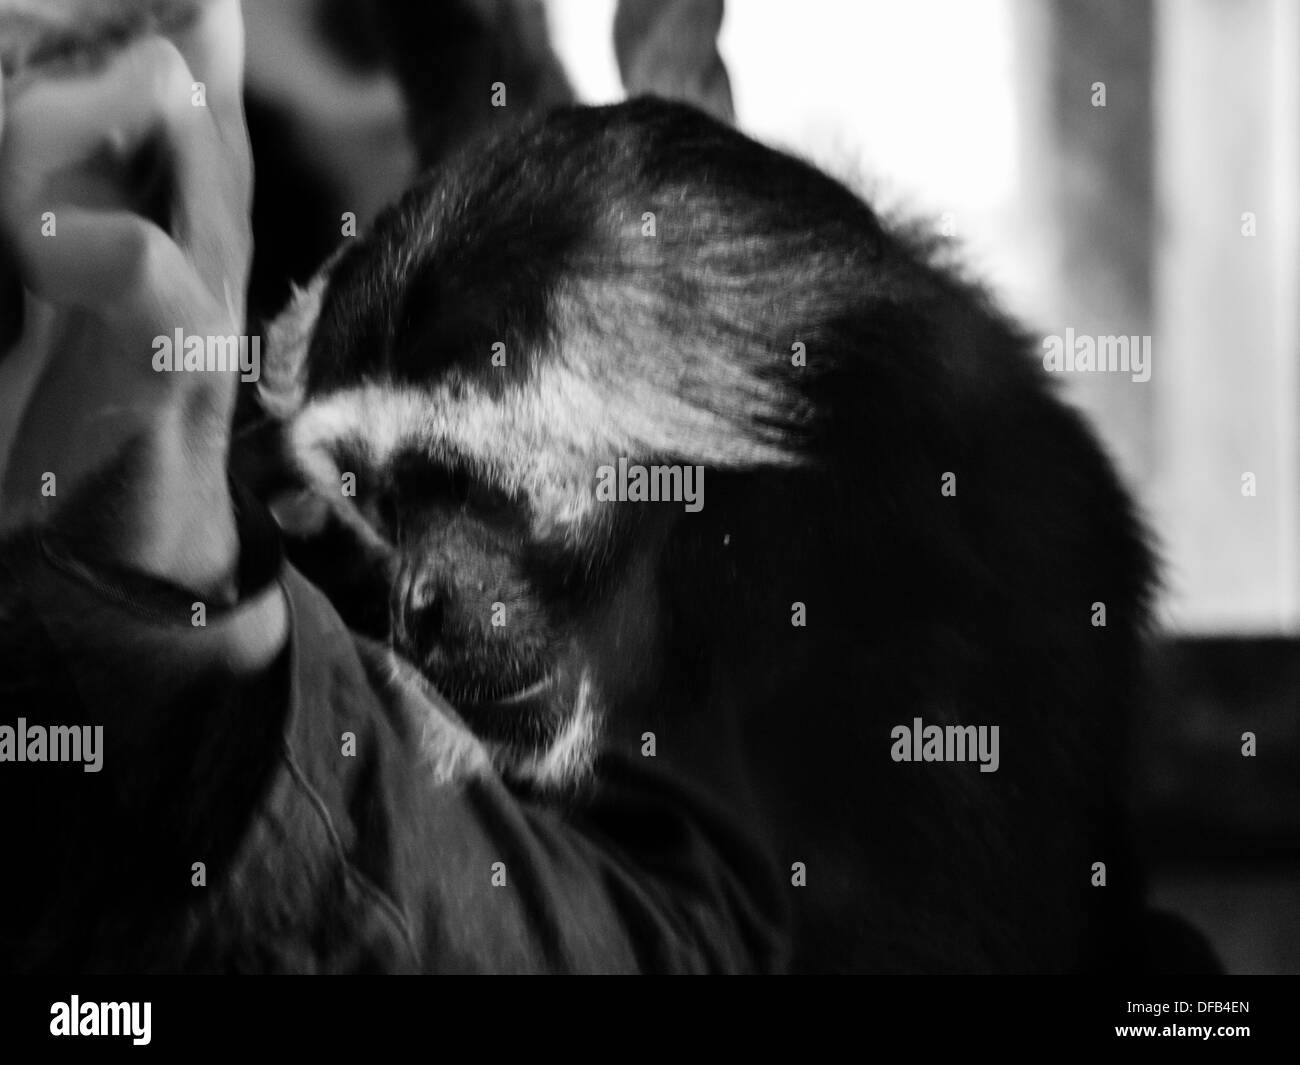 A Chimpanzee (Pan Troglodytes) behind glass being photographed by a visitor. The Chimp has a  solemn look on his face. - Stock Image